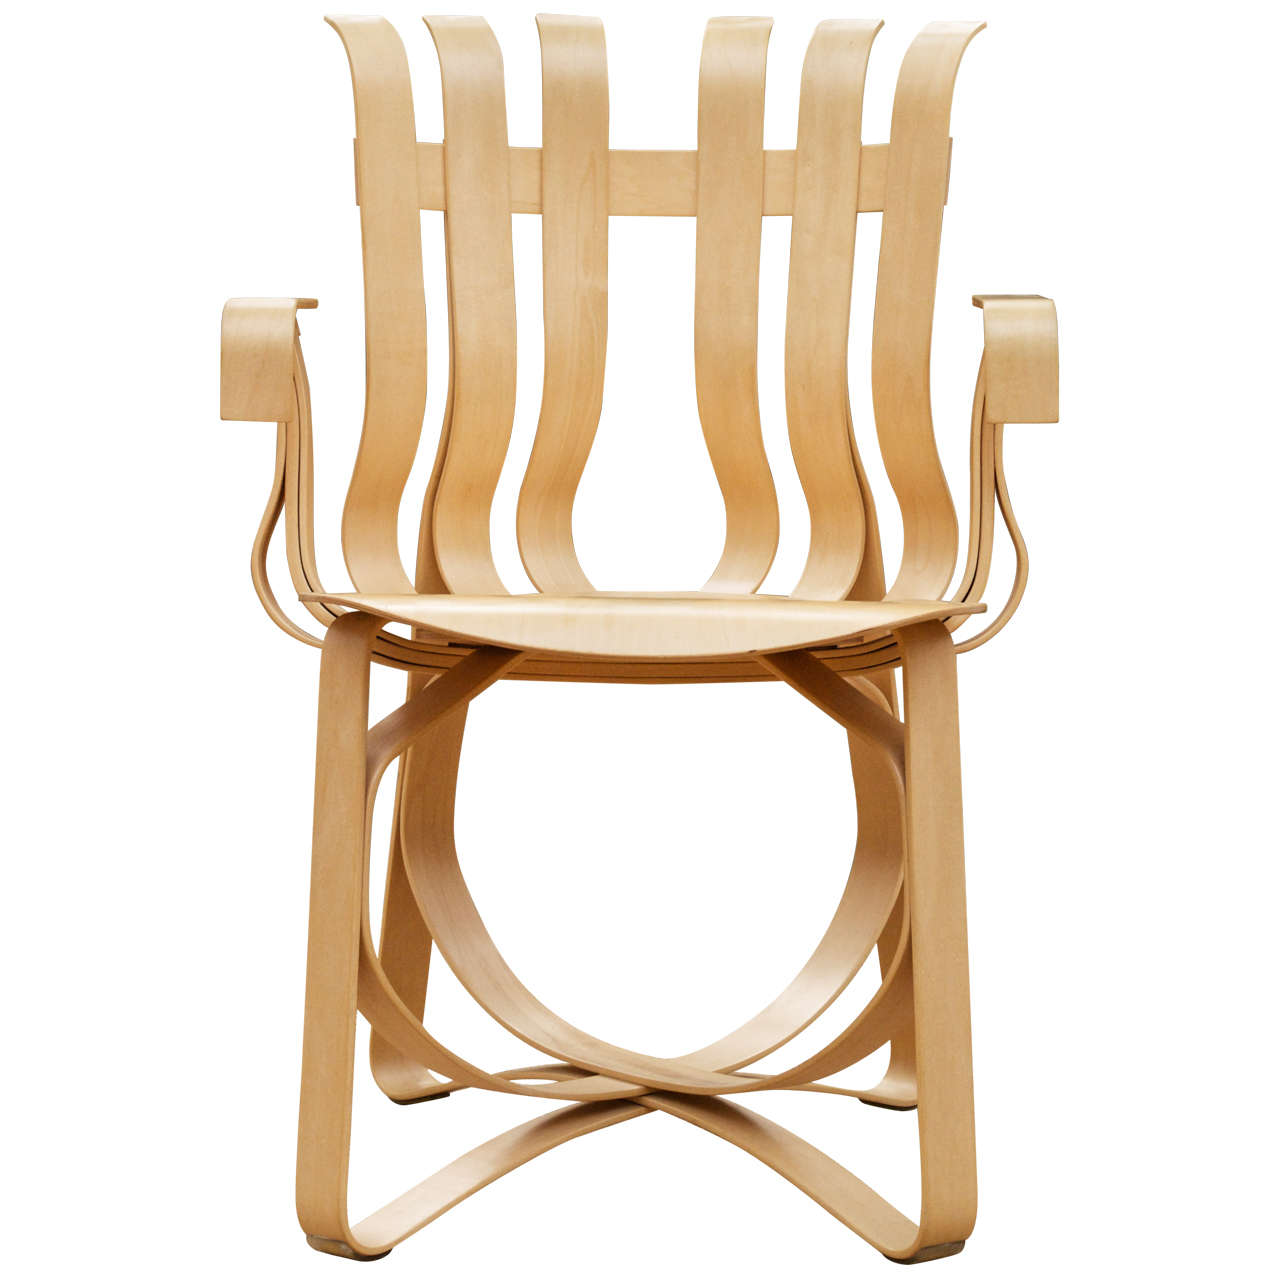 70s chairs is frank o gehry s cardboard chair wiggle side chair - Frank Gehry Side Chair Vintage Knoll Frank Gehry Fog Chairs Hat Trick Armchair By Frank Gehry For Knoll 1